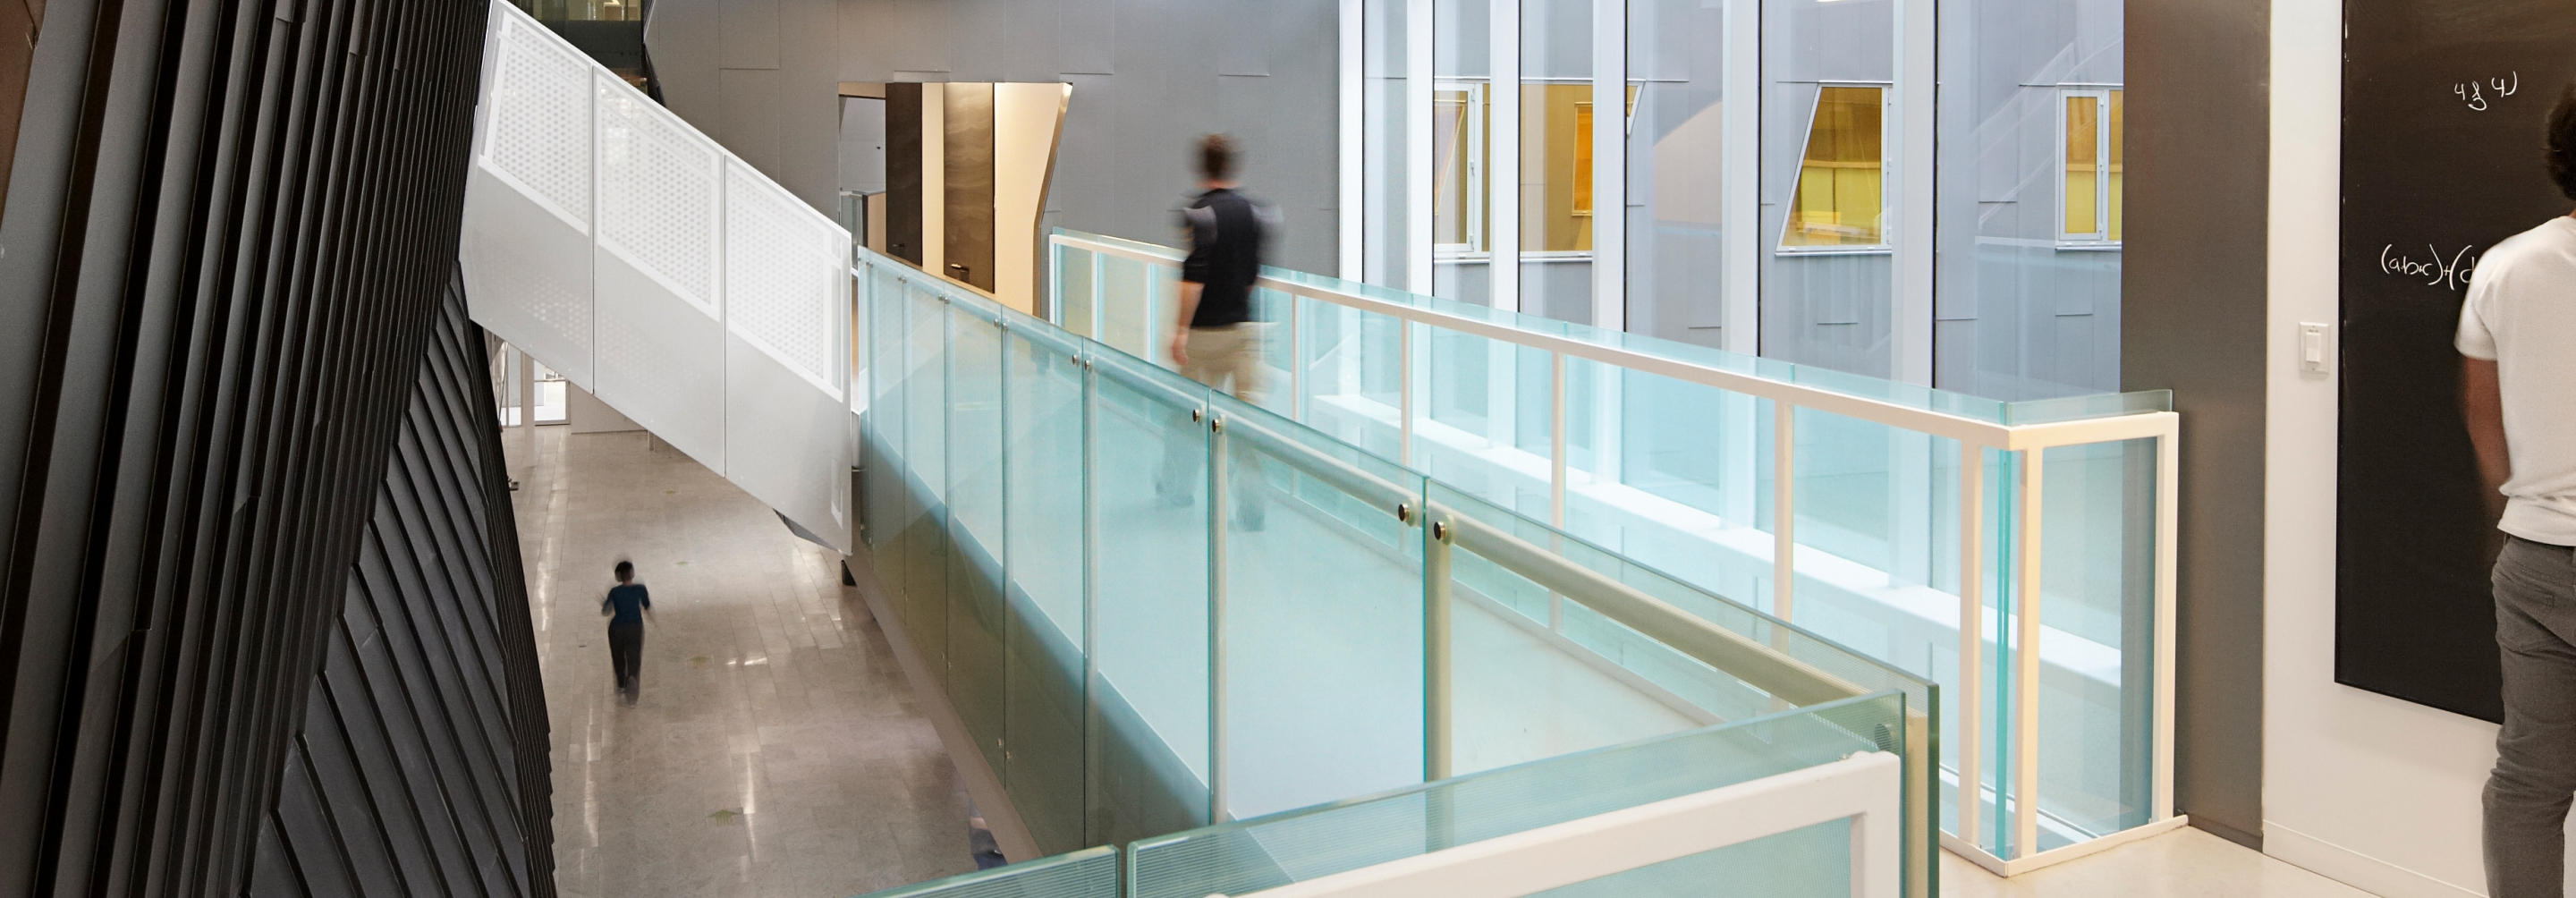 Person walking down an open hallway surrounded by glass windows